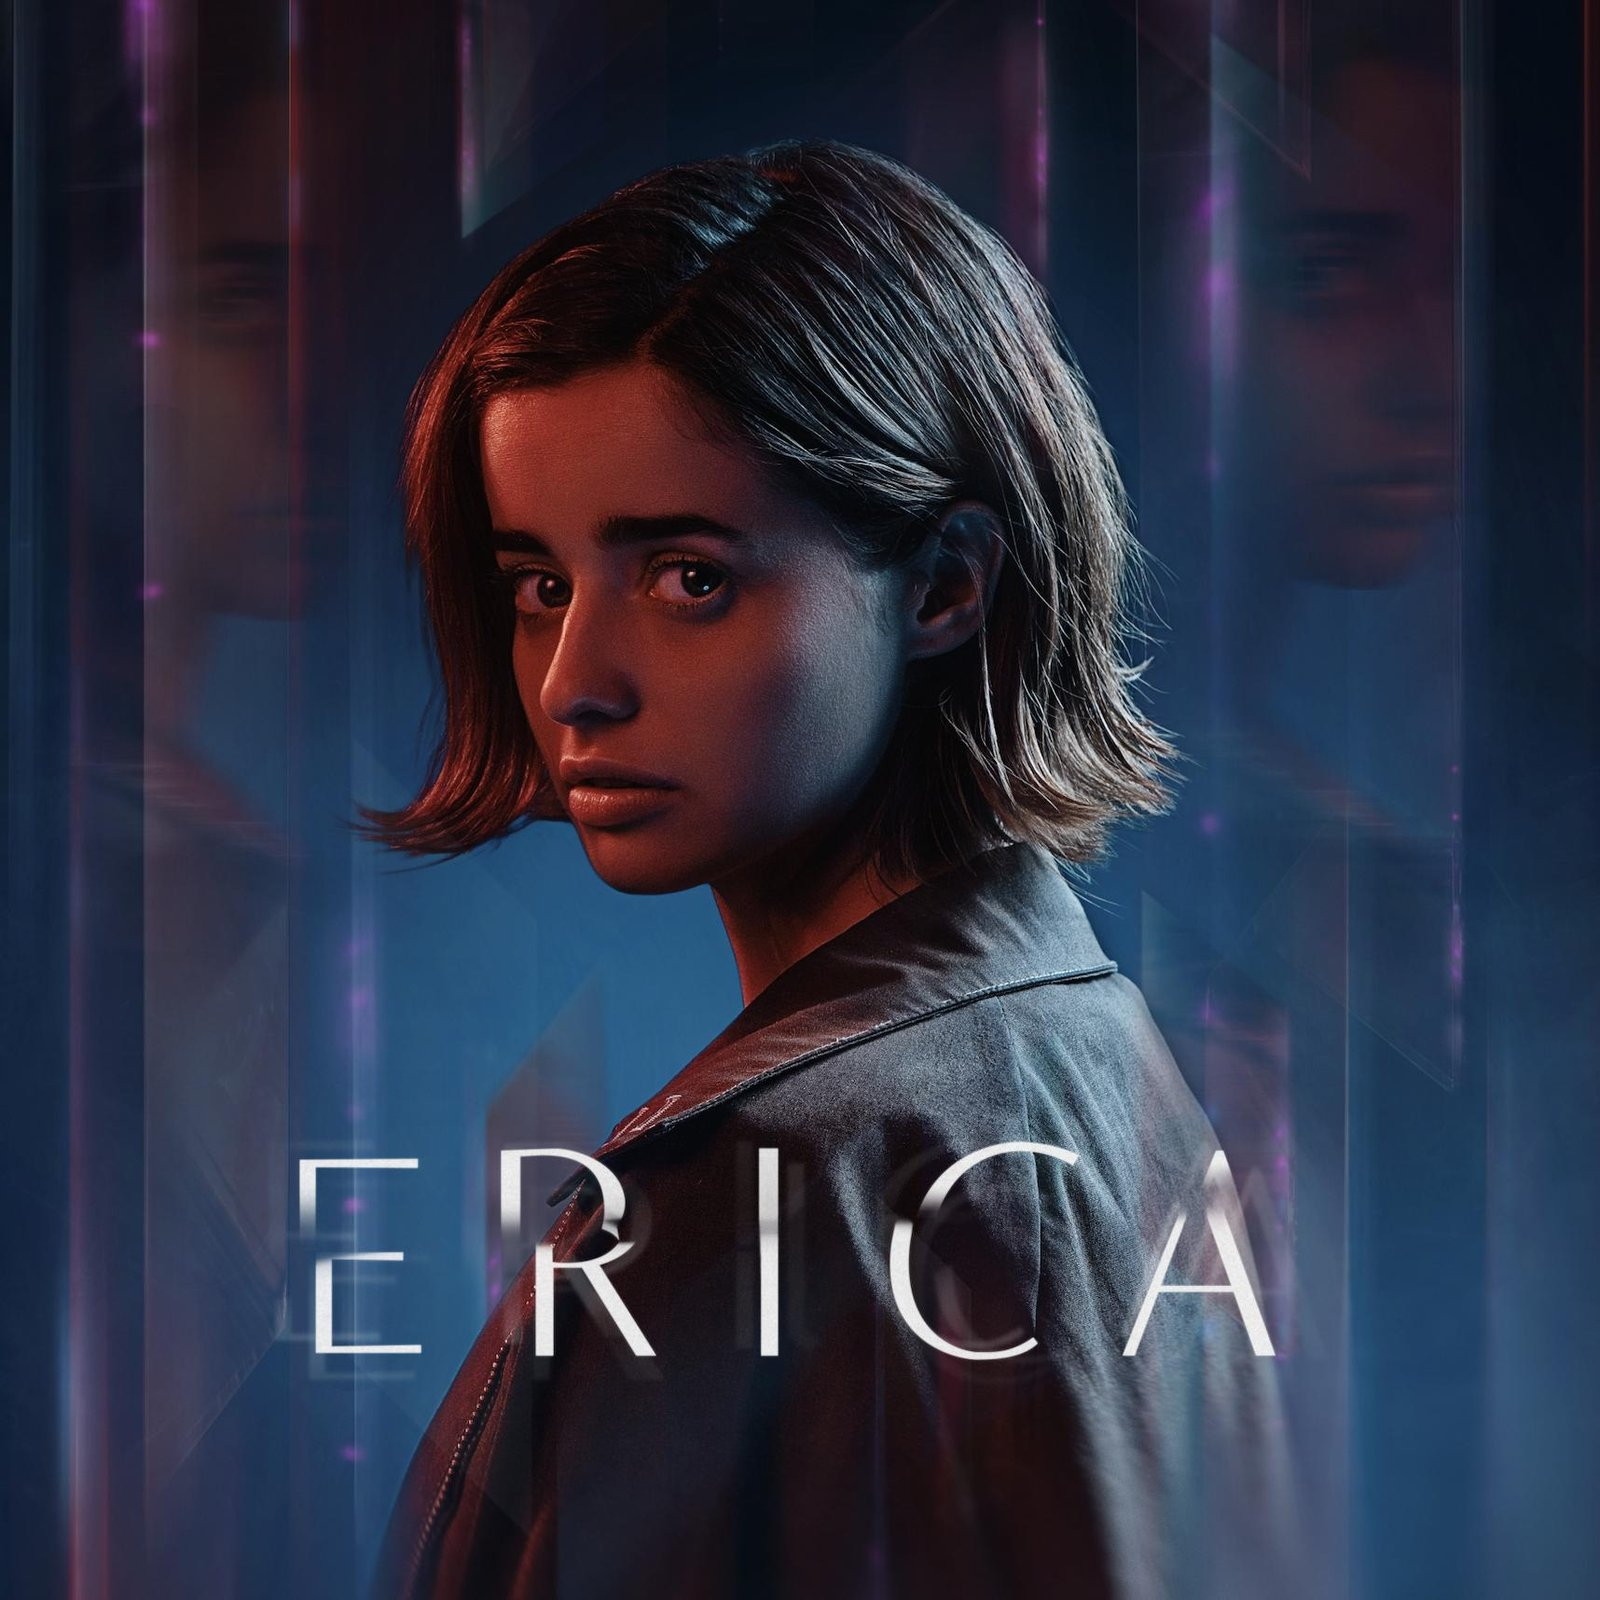 Poster for Erica